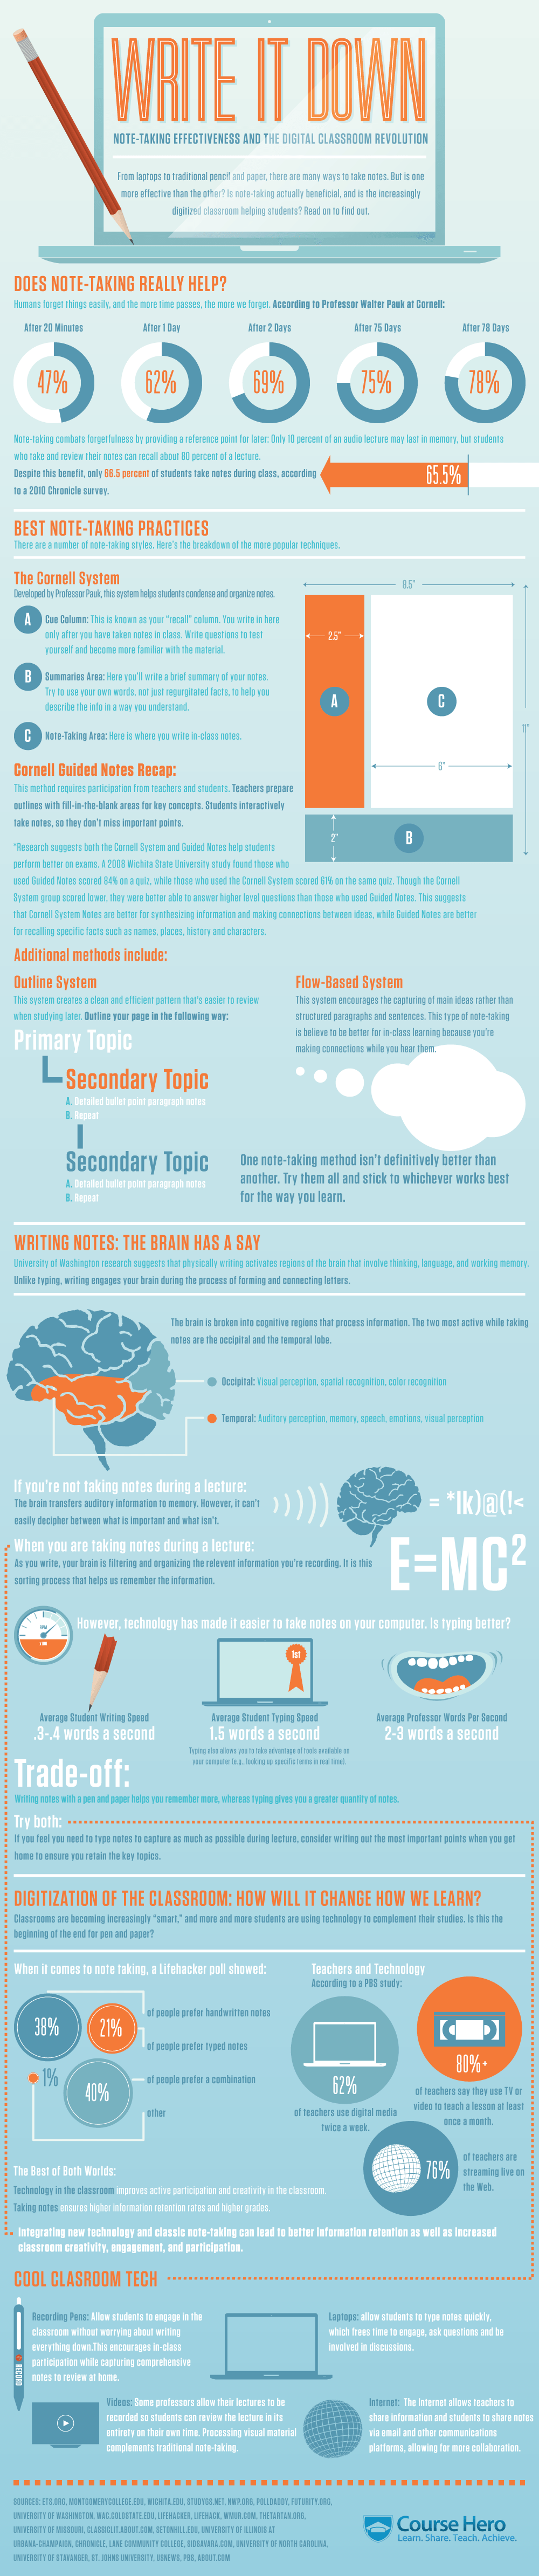 Note-taking-Effectiveness-in-the-Digital-Classroom-Infographic